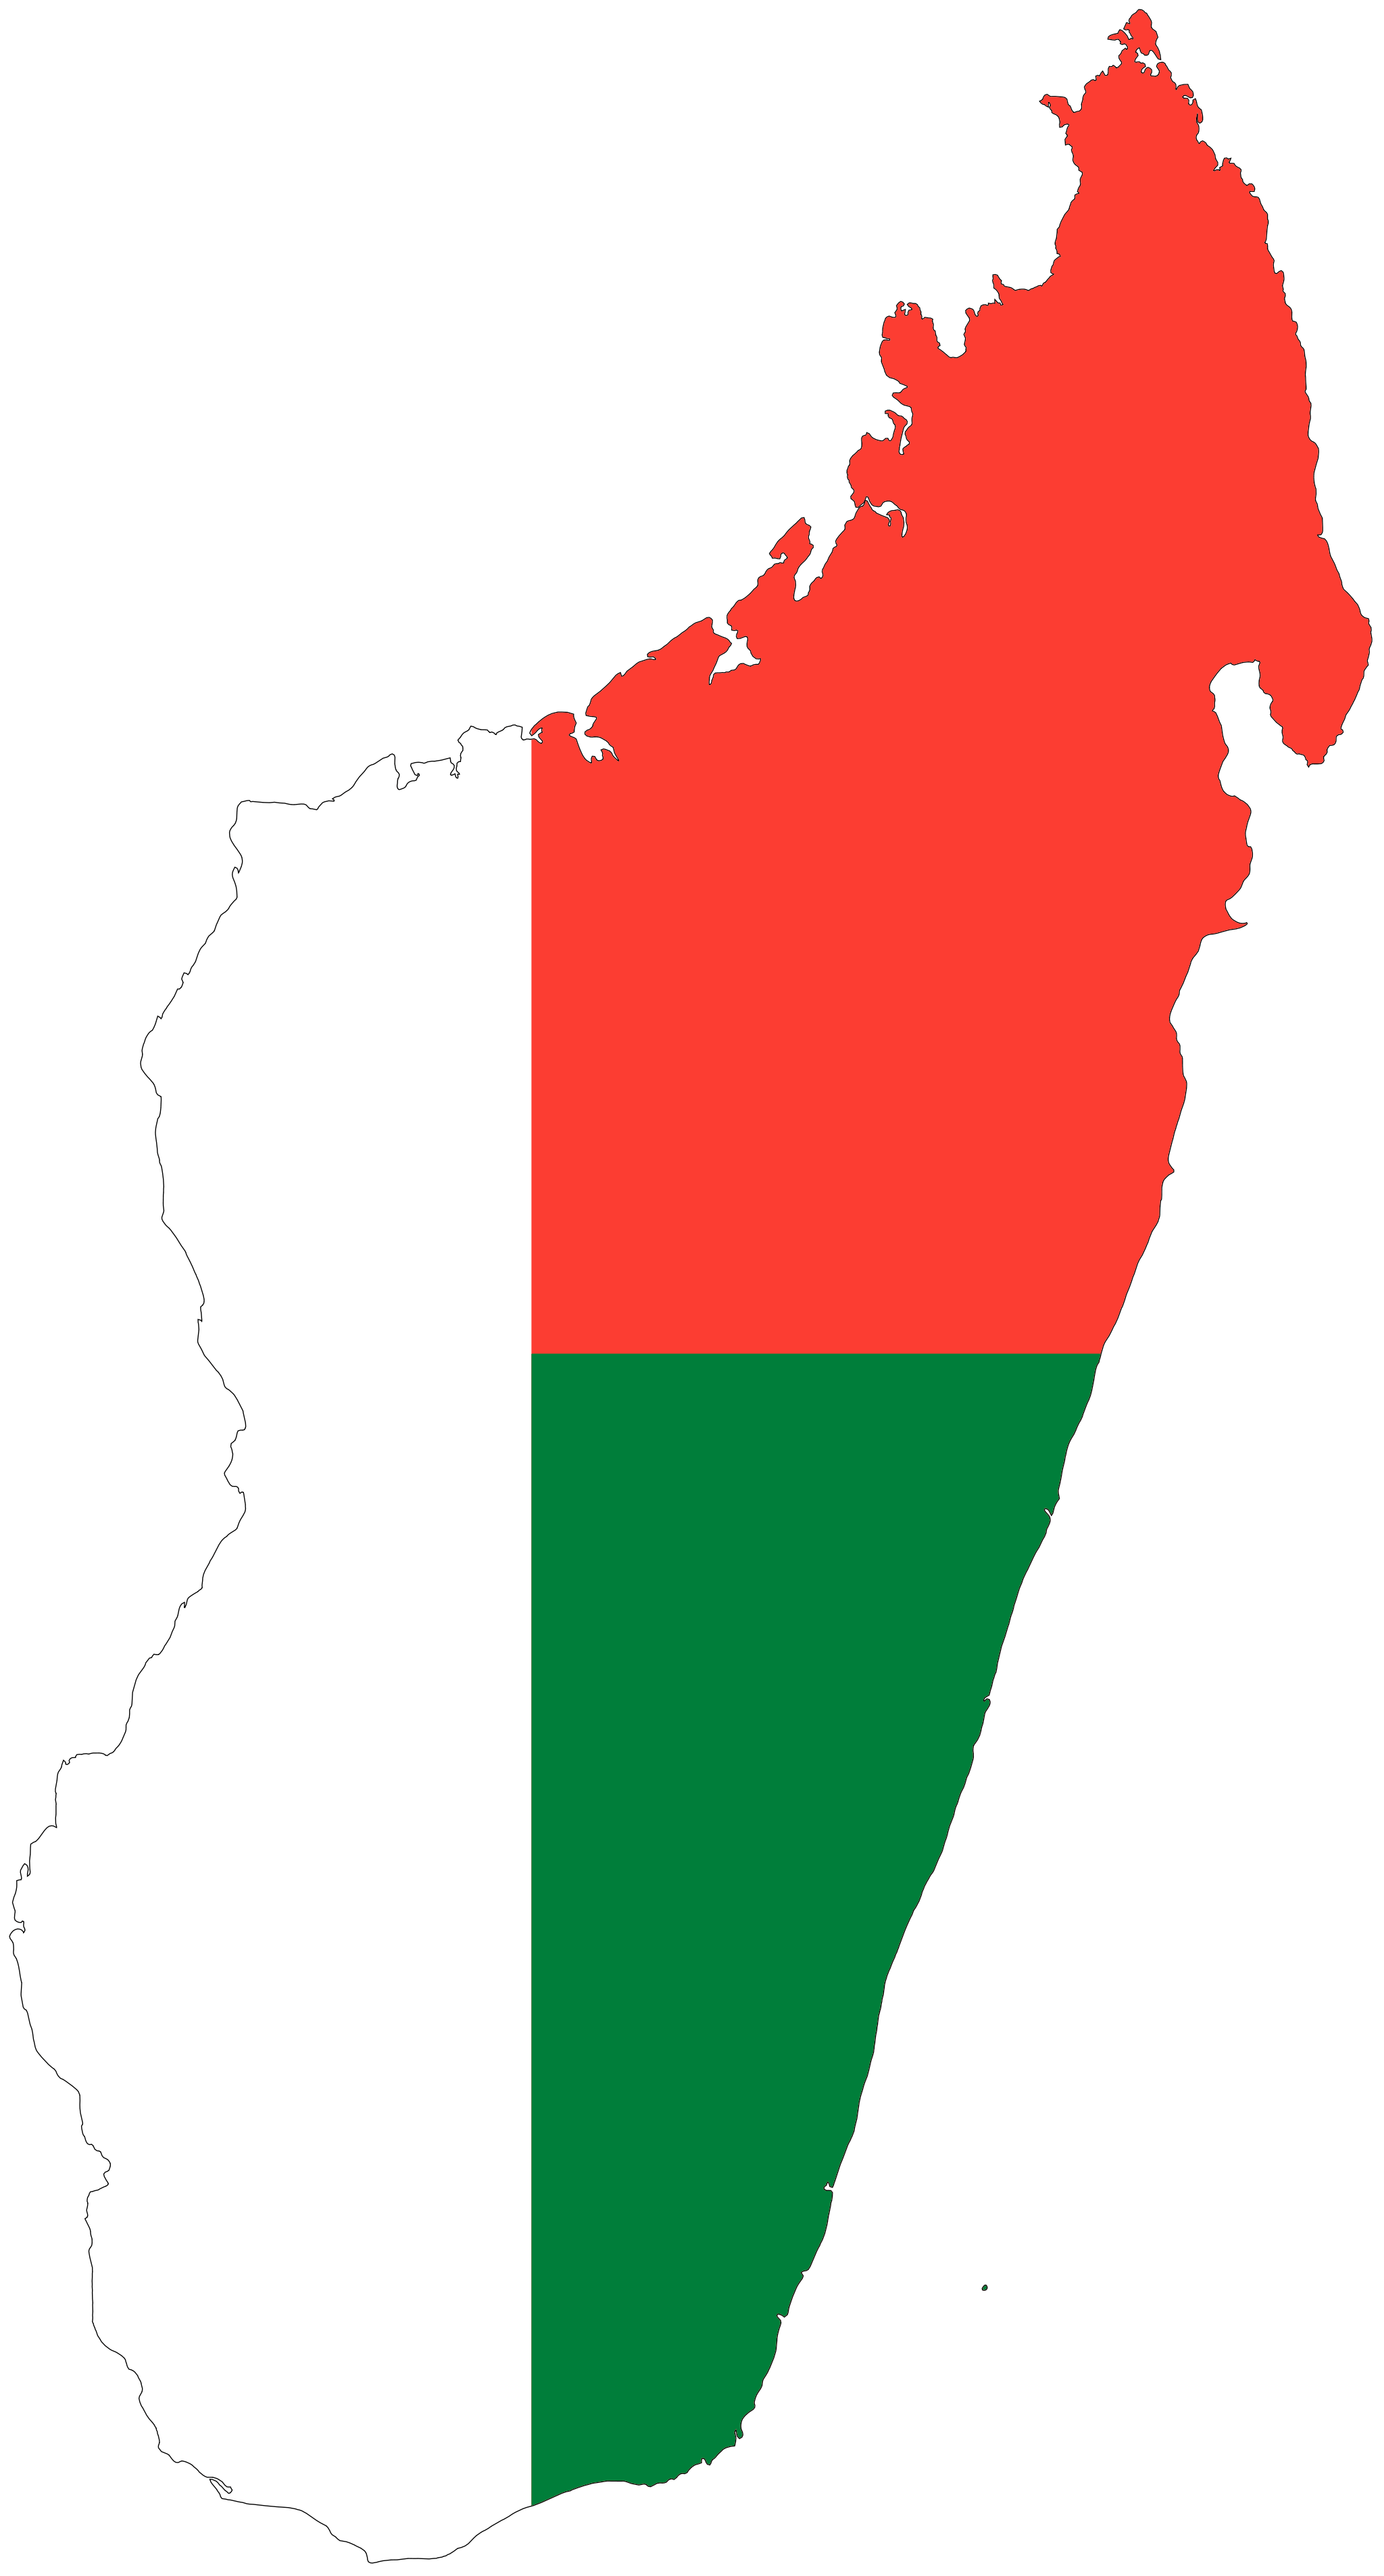 Madagascar country png. Flag map africa